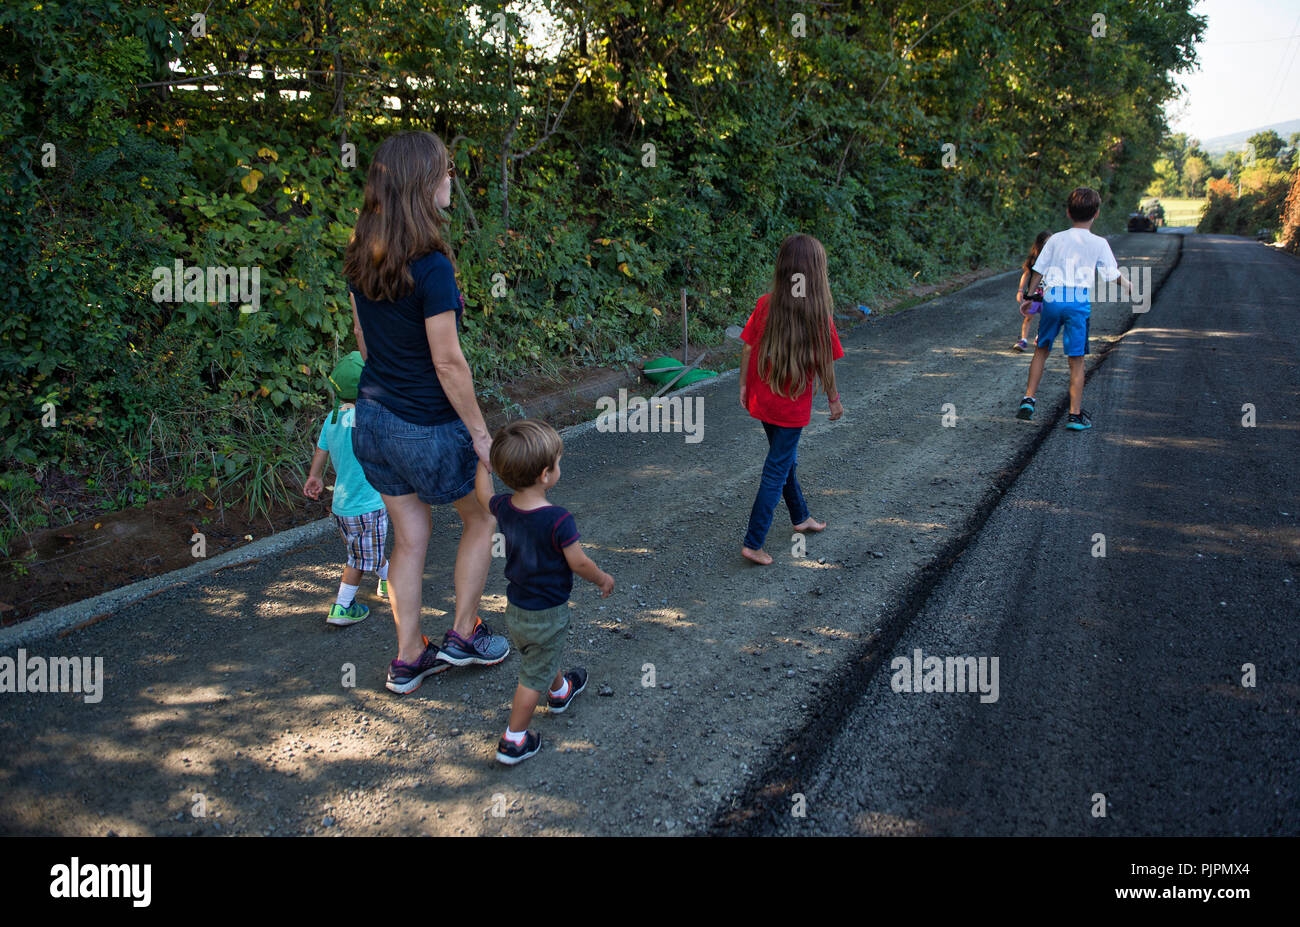 UNITED STATES: September 4, 2018: Work has started for the paving of Williams Gap road in Western Loudoun that will forever change the character of th - Stock Image